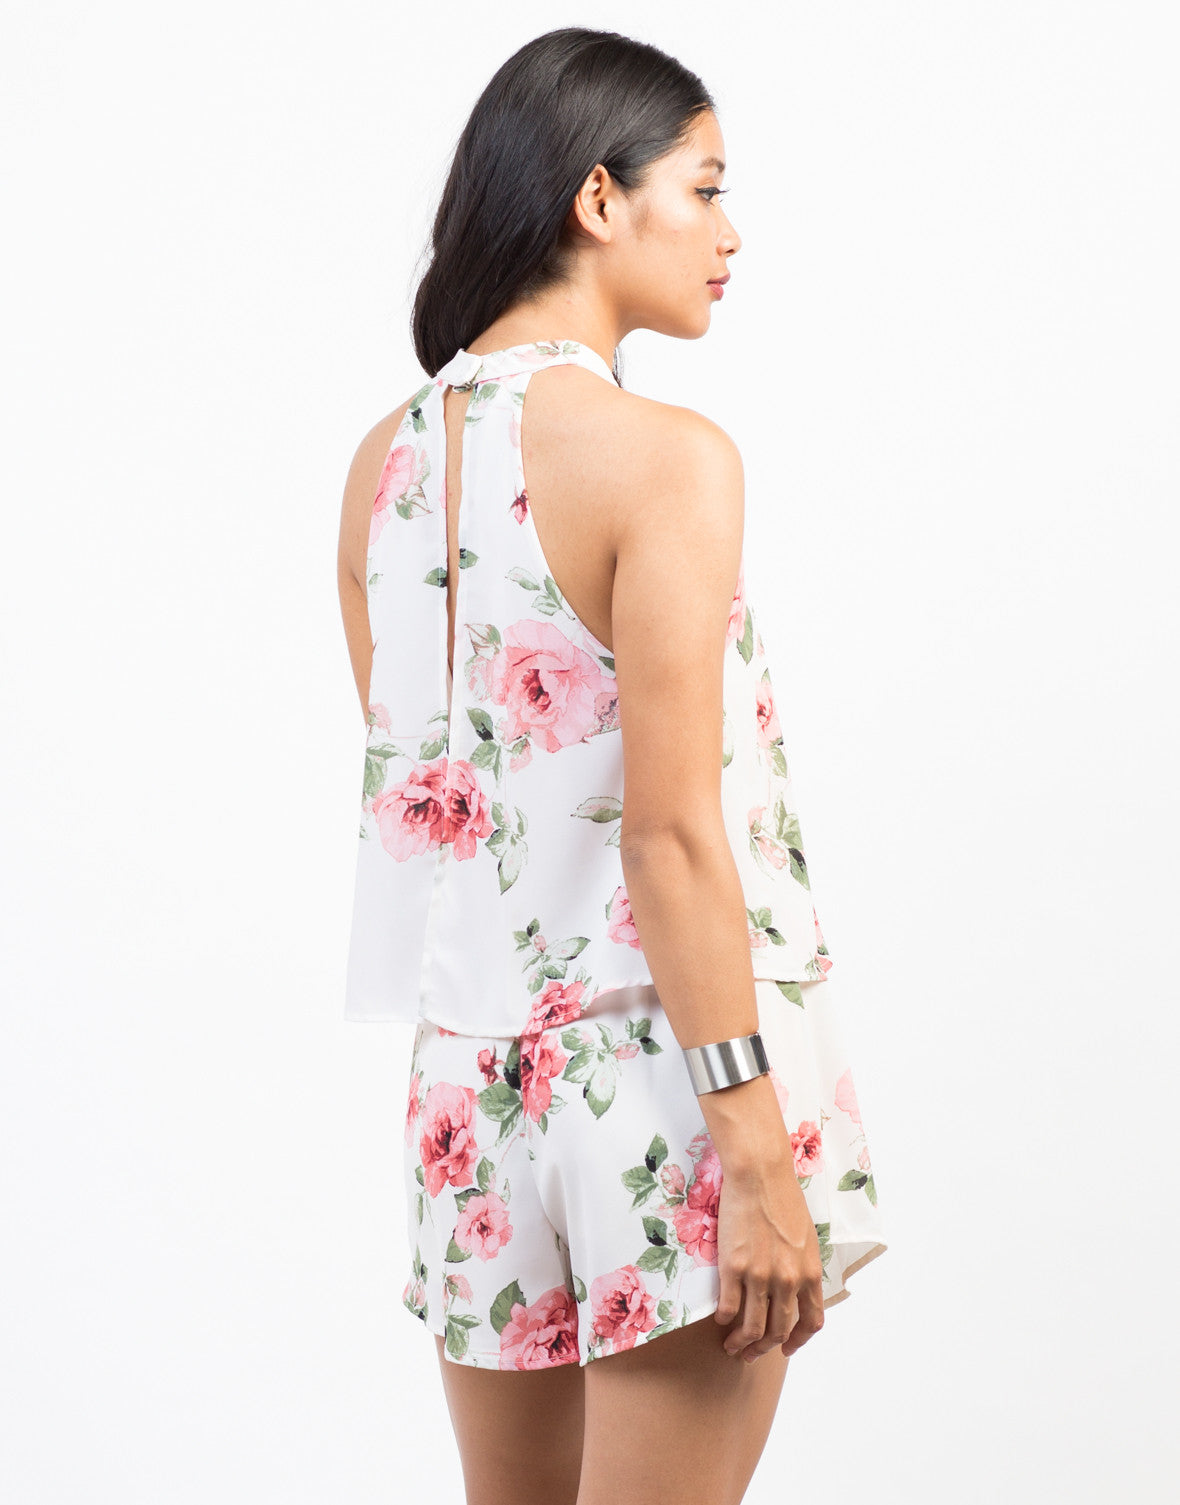 Back View of Tiered Floral Chiffon Romper